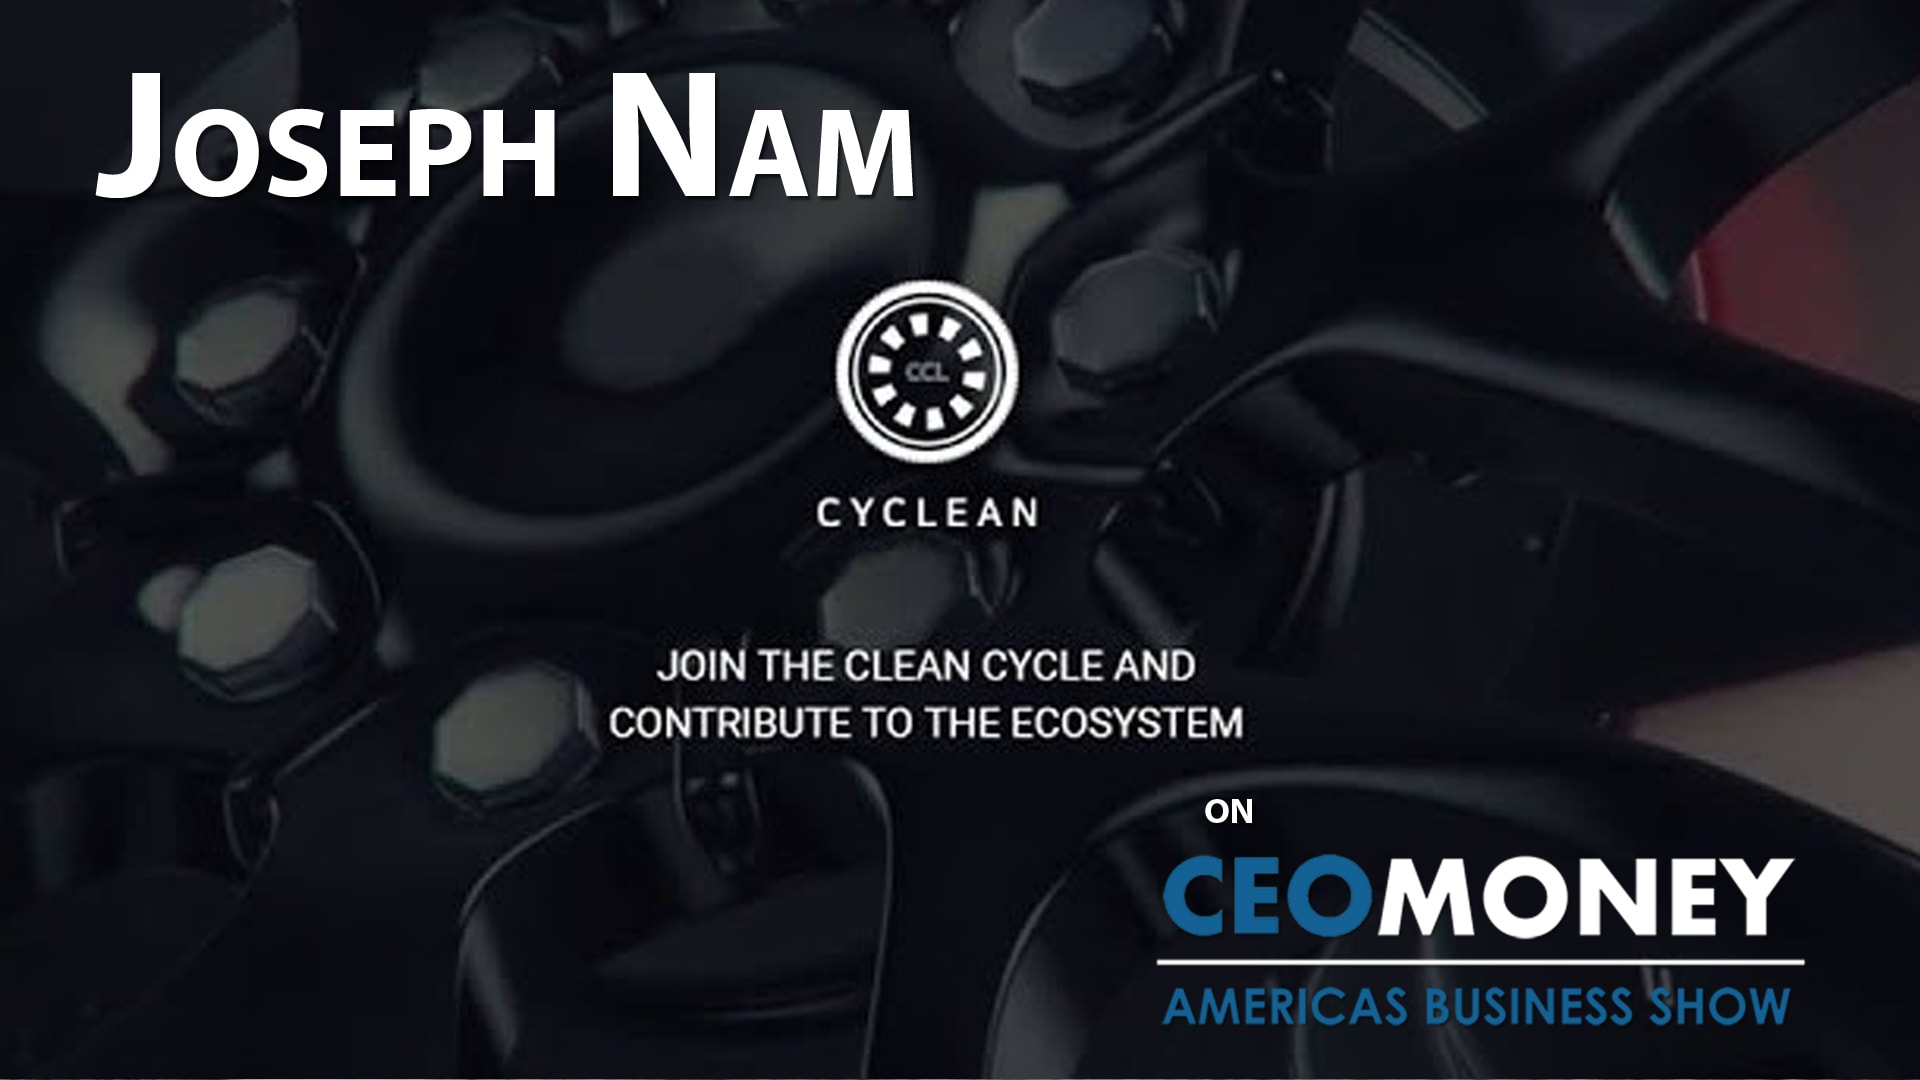 Joseph Nam on how transport rentals with the CyClean coin can help replace fossil fuels